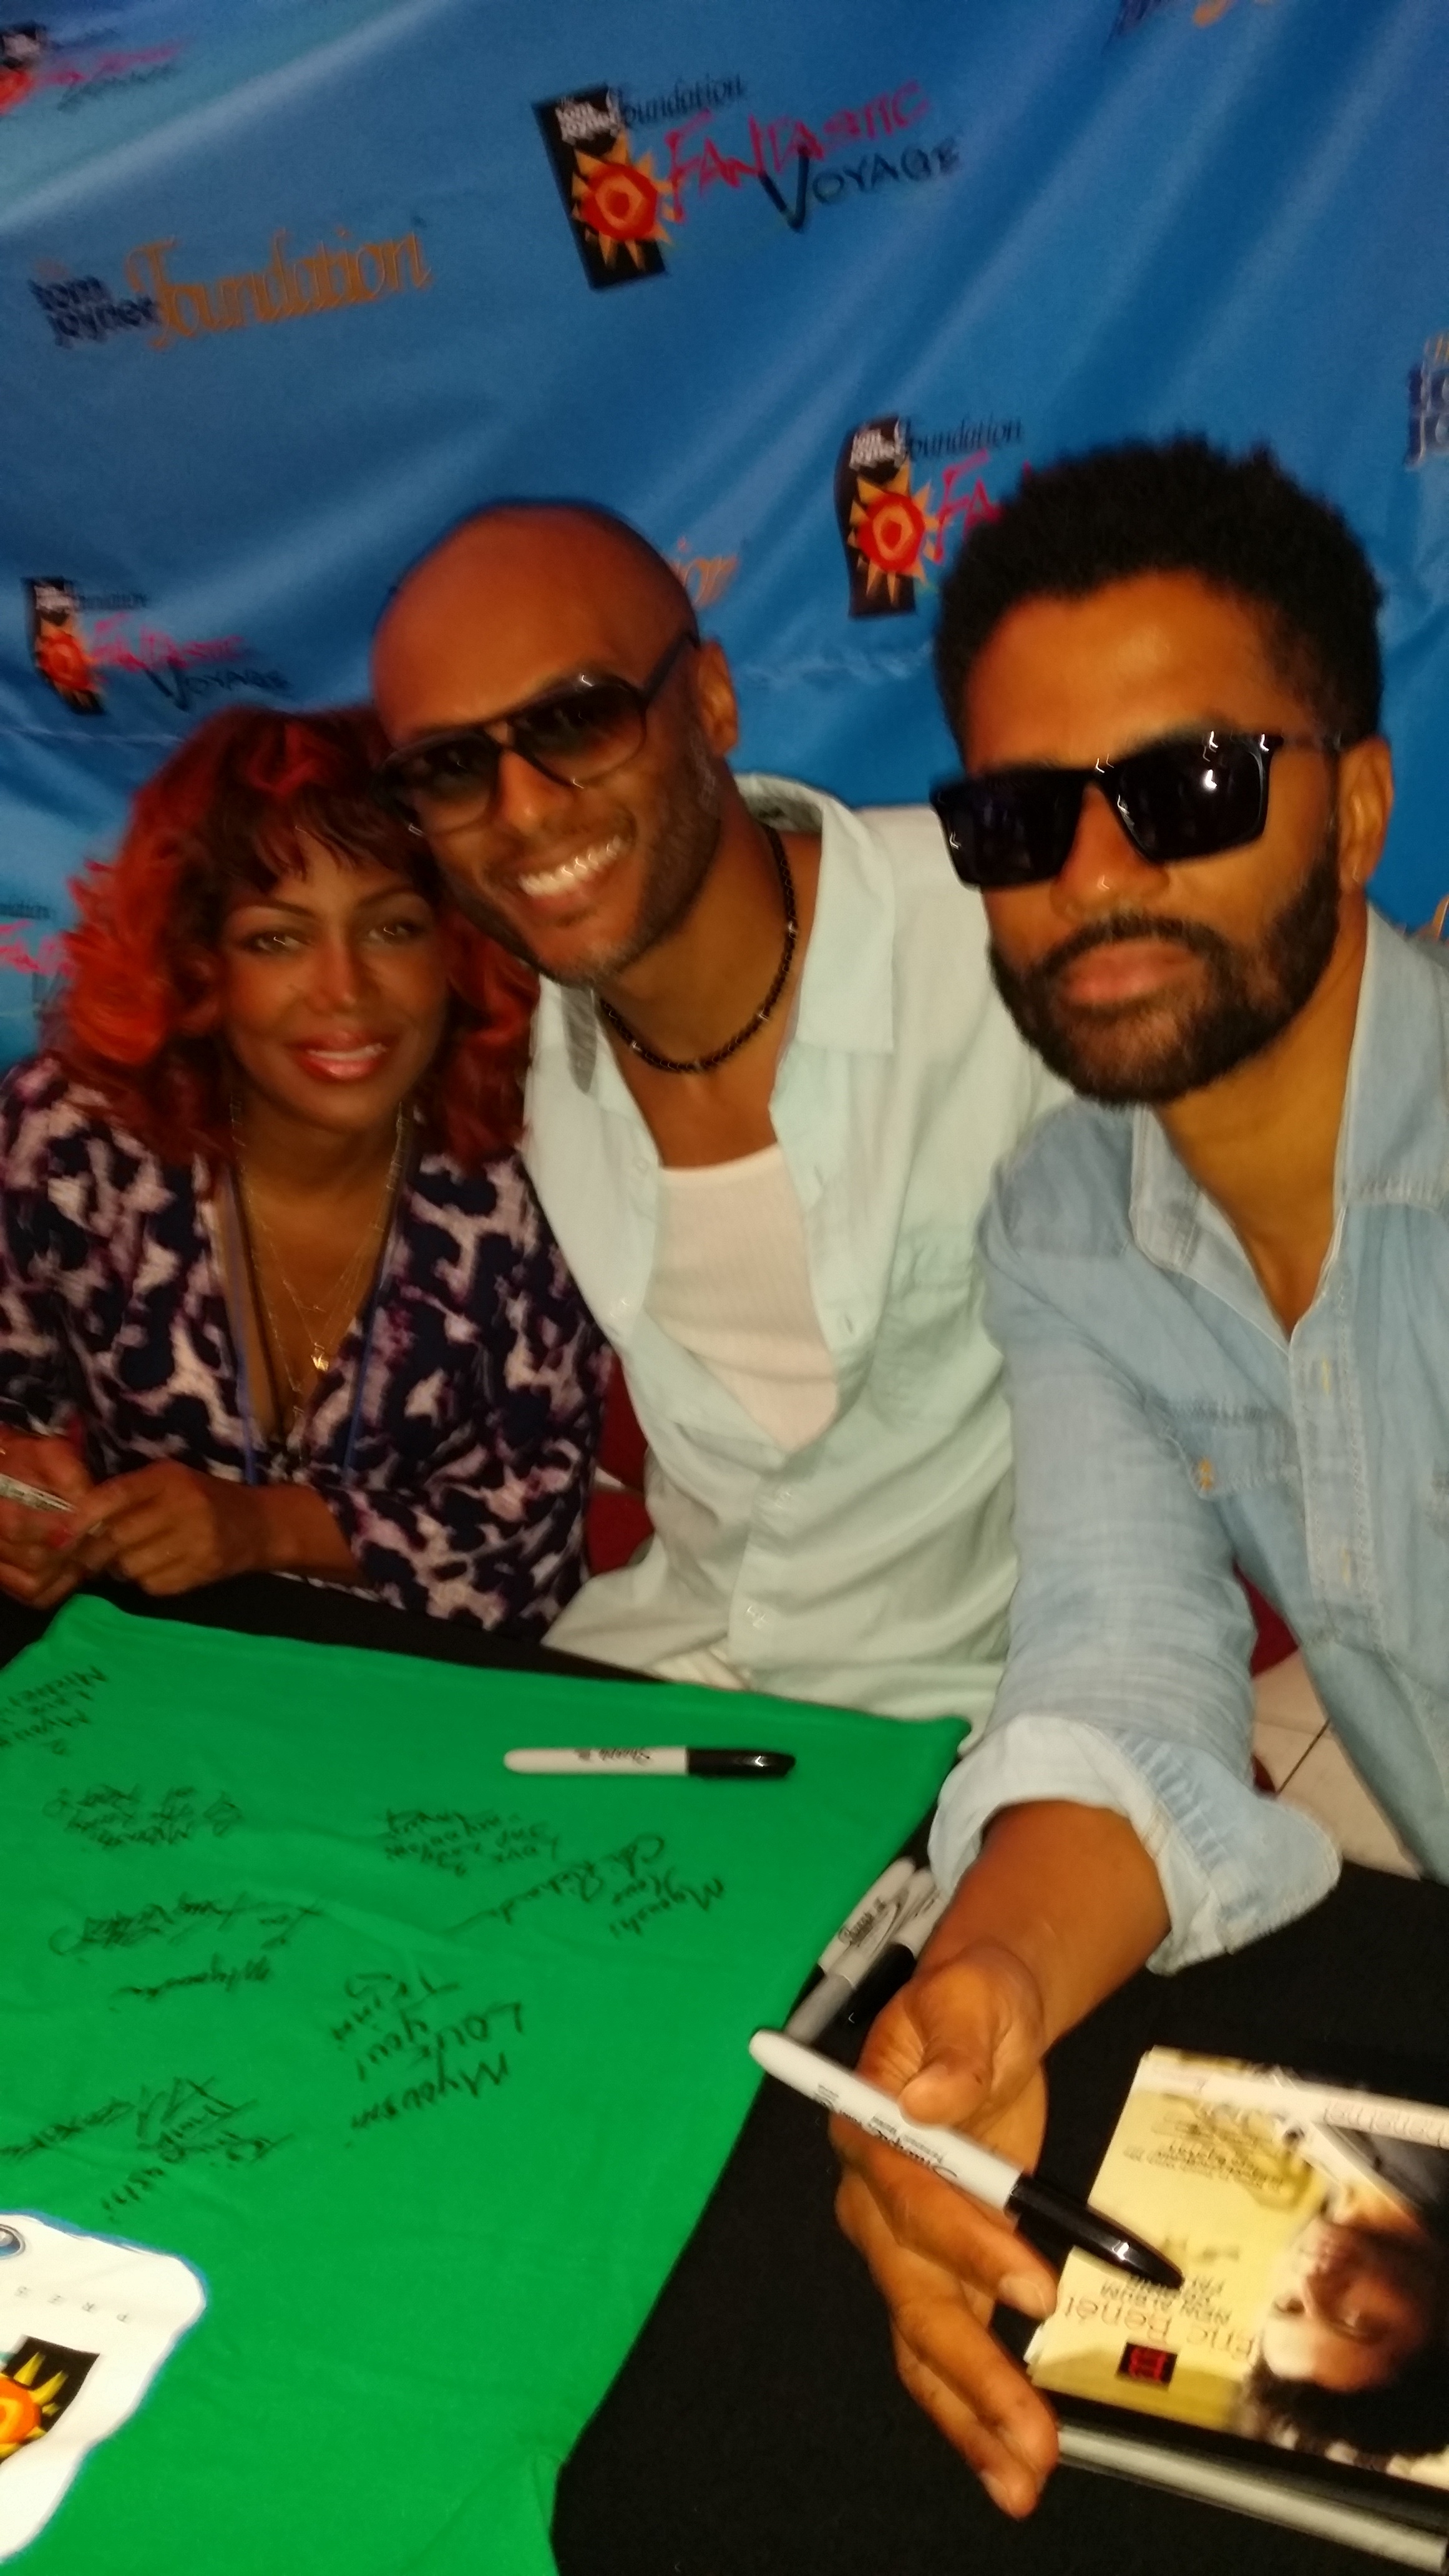 Michel'le, Kenny Lattimore, and Eric Benet